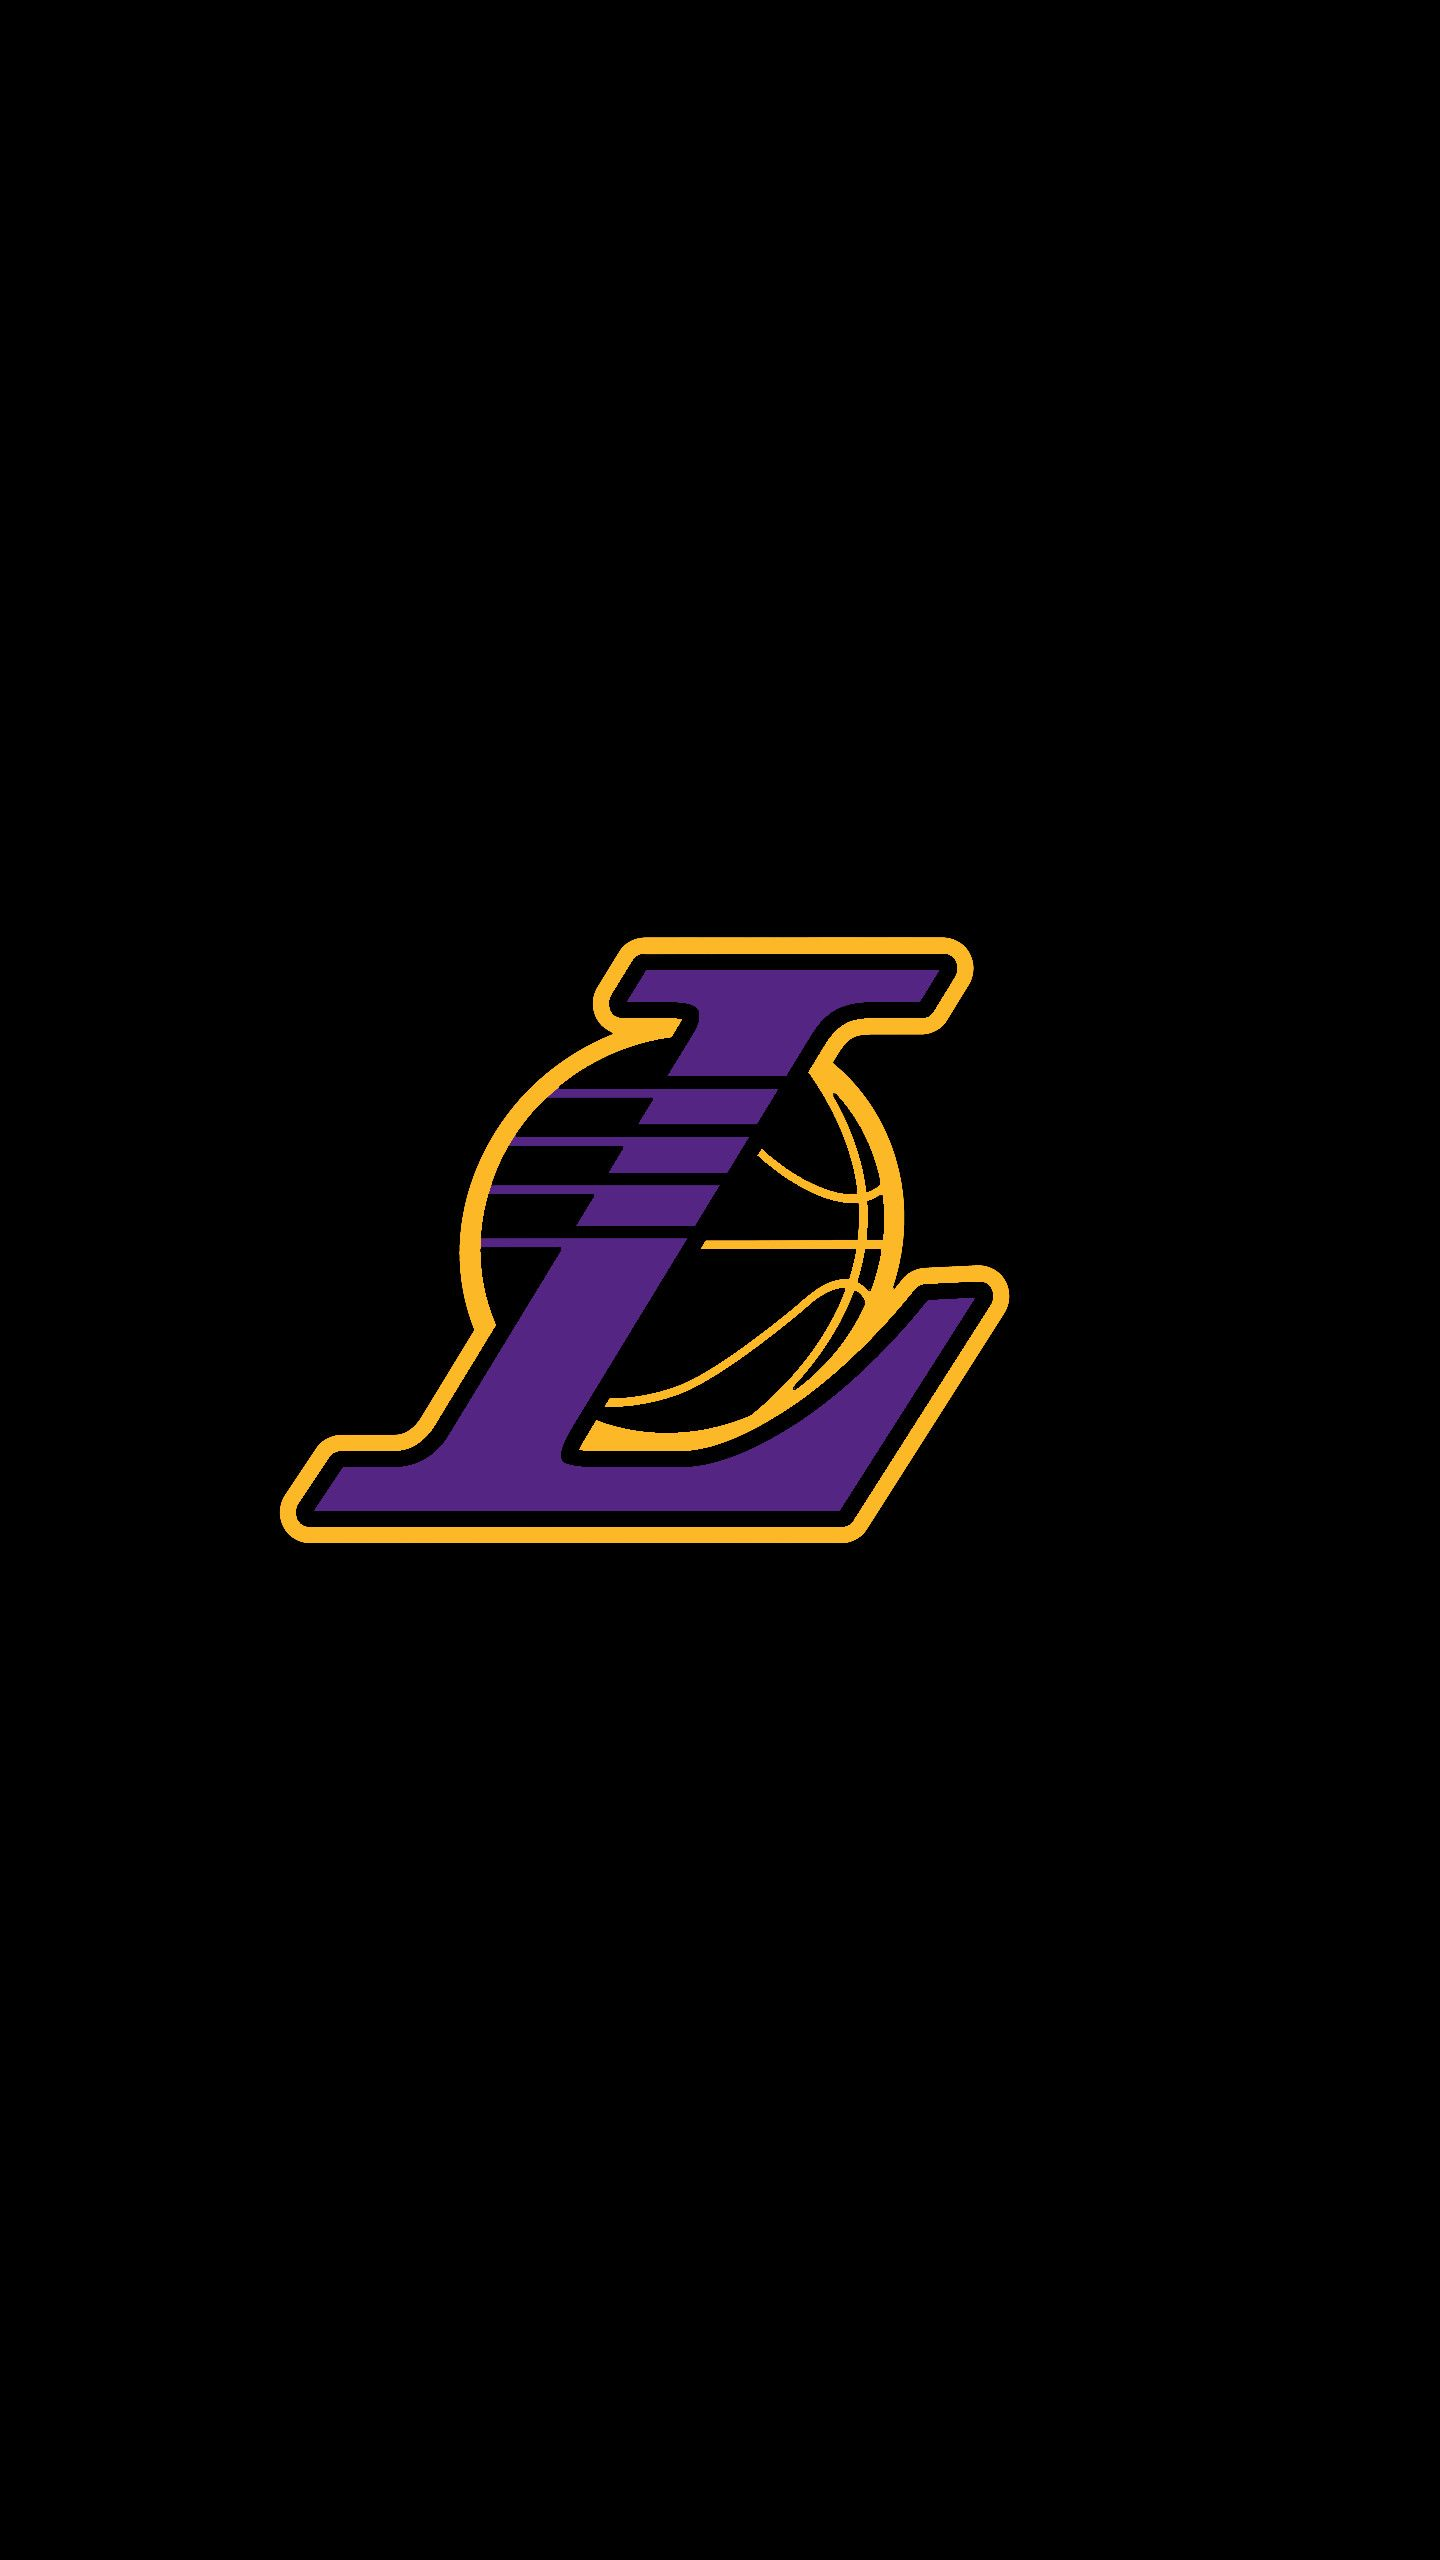 Lakers Iphone Wallpapers Top Free Lakers Iphone Backgrounds